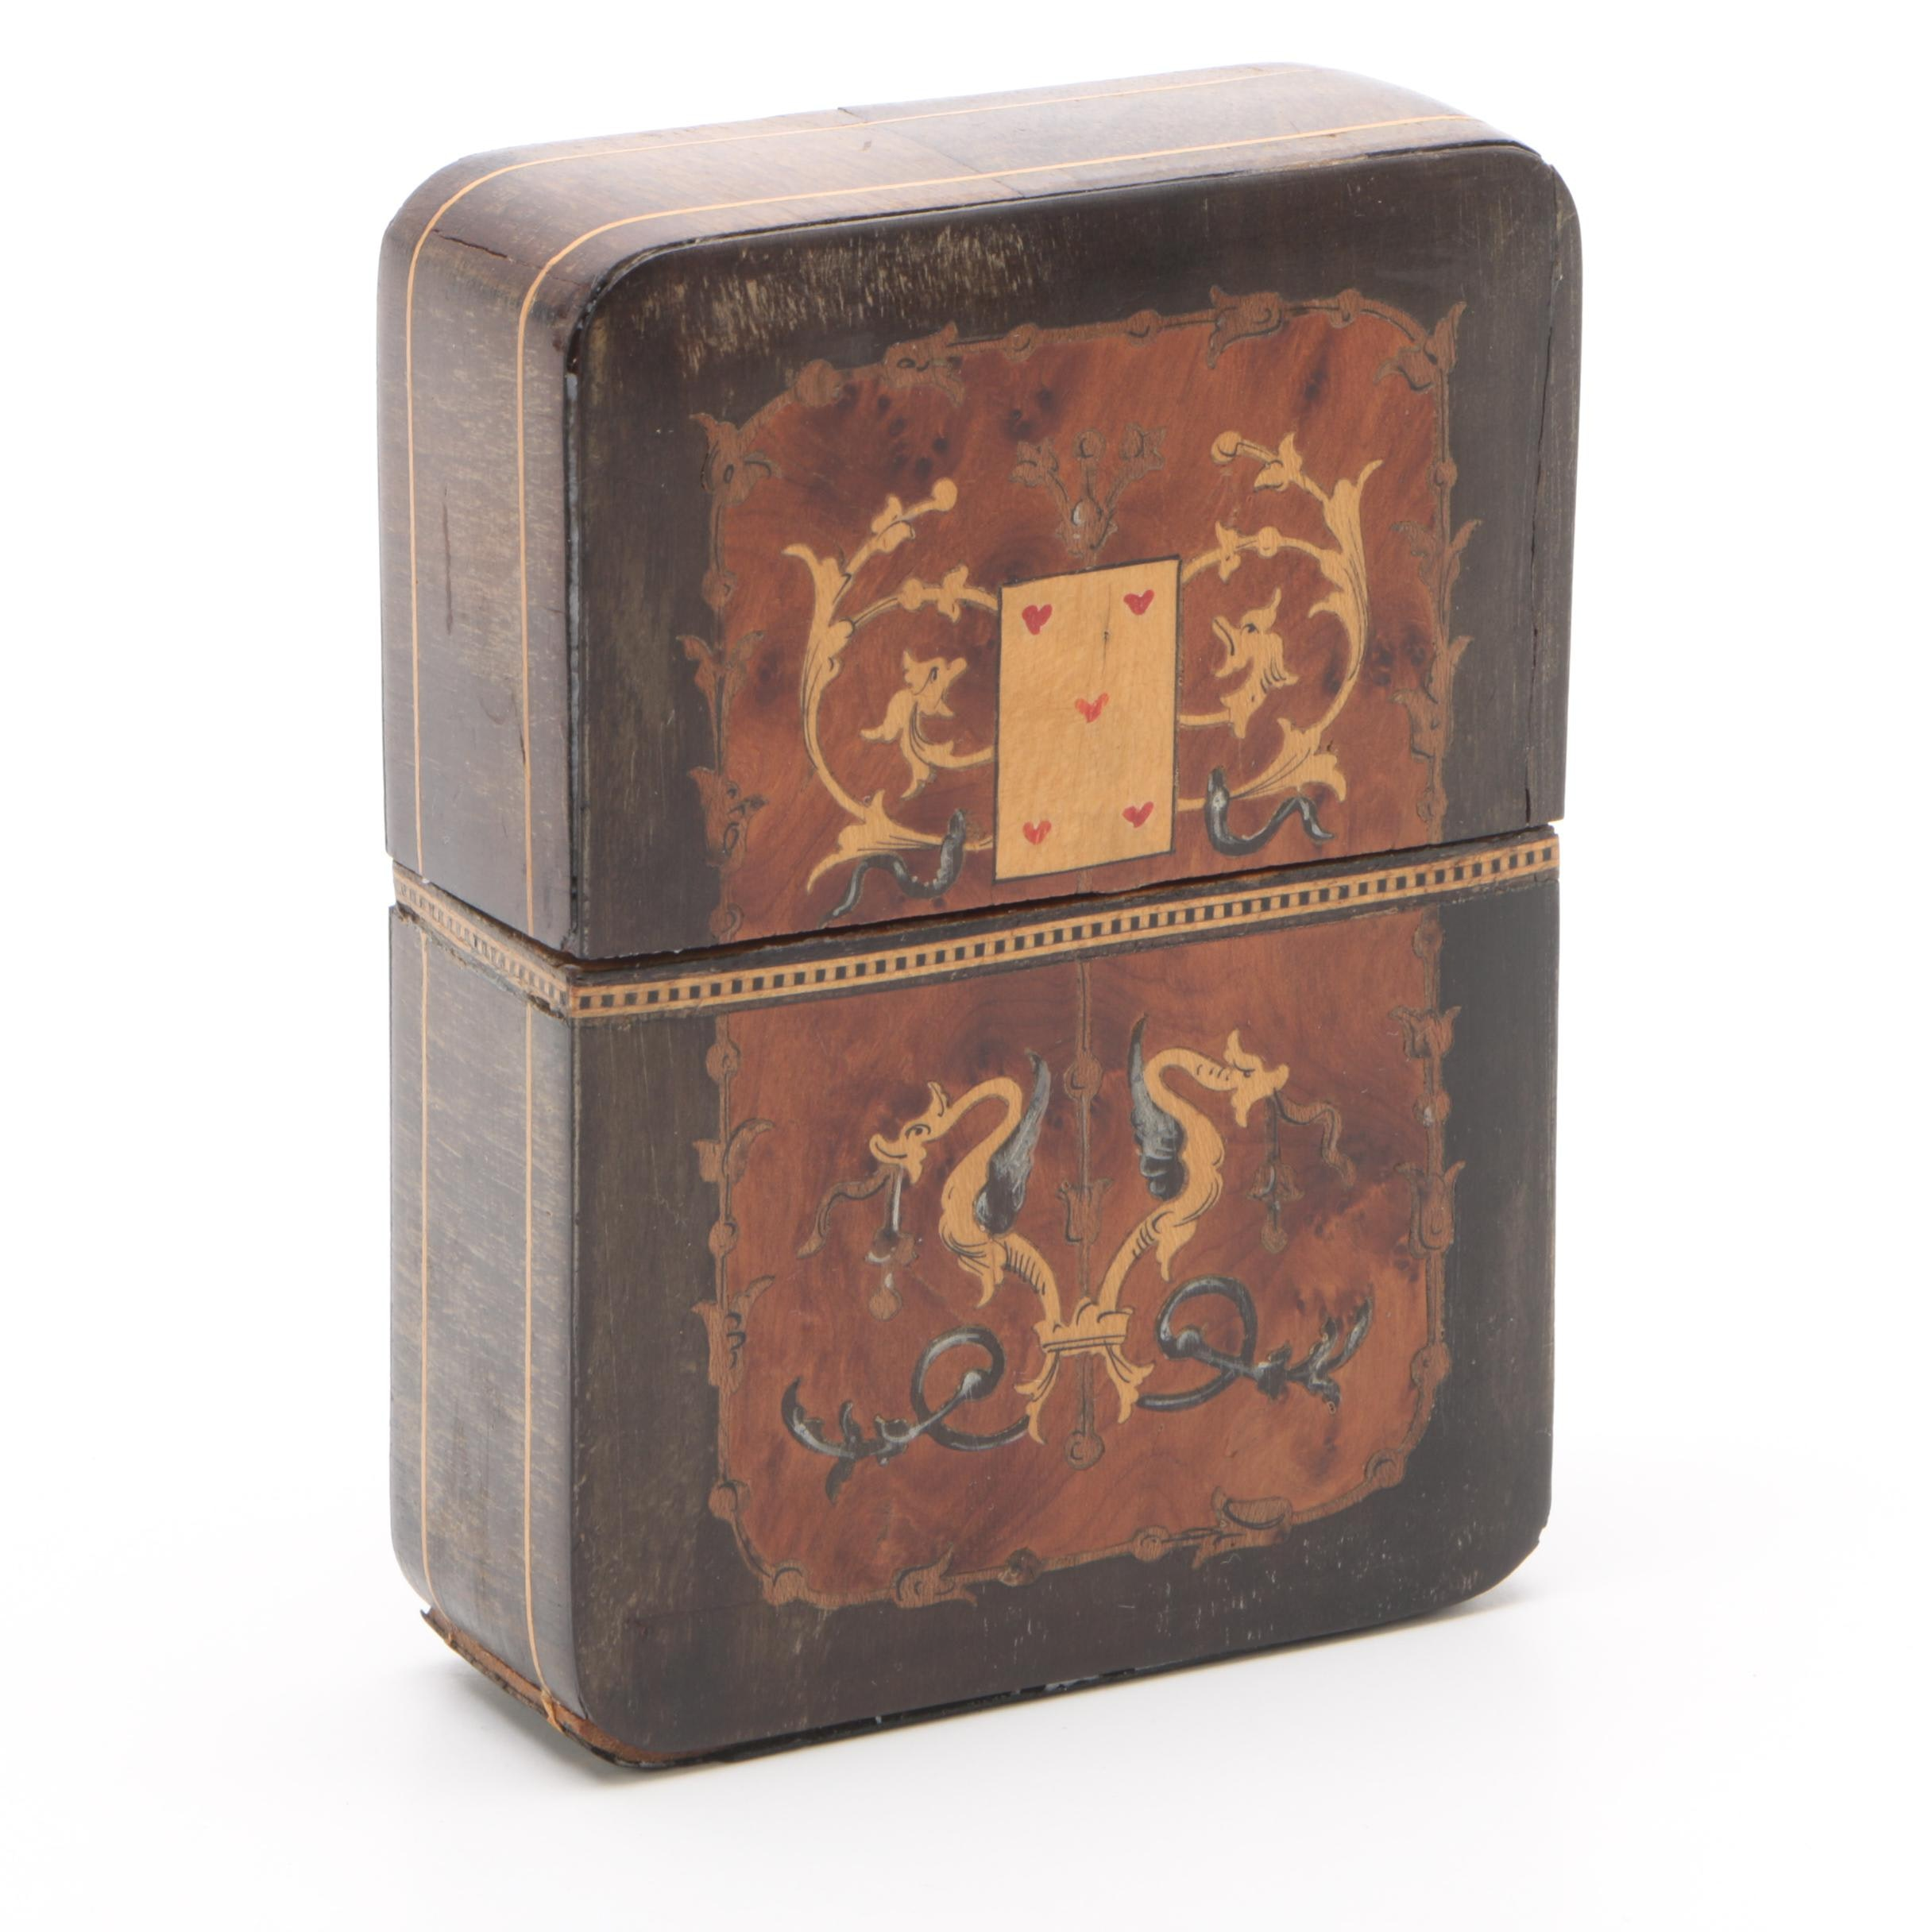 Vintage Inlaid Wood Playing Card Box